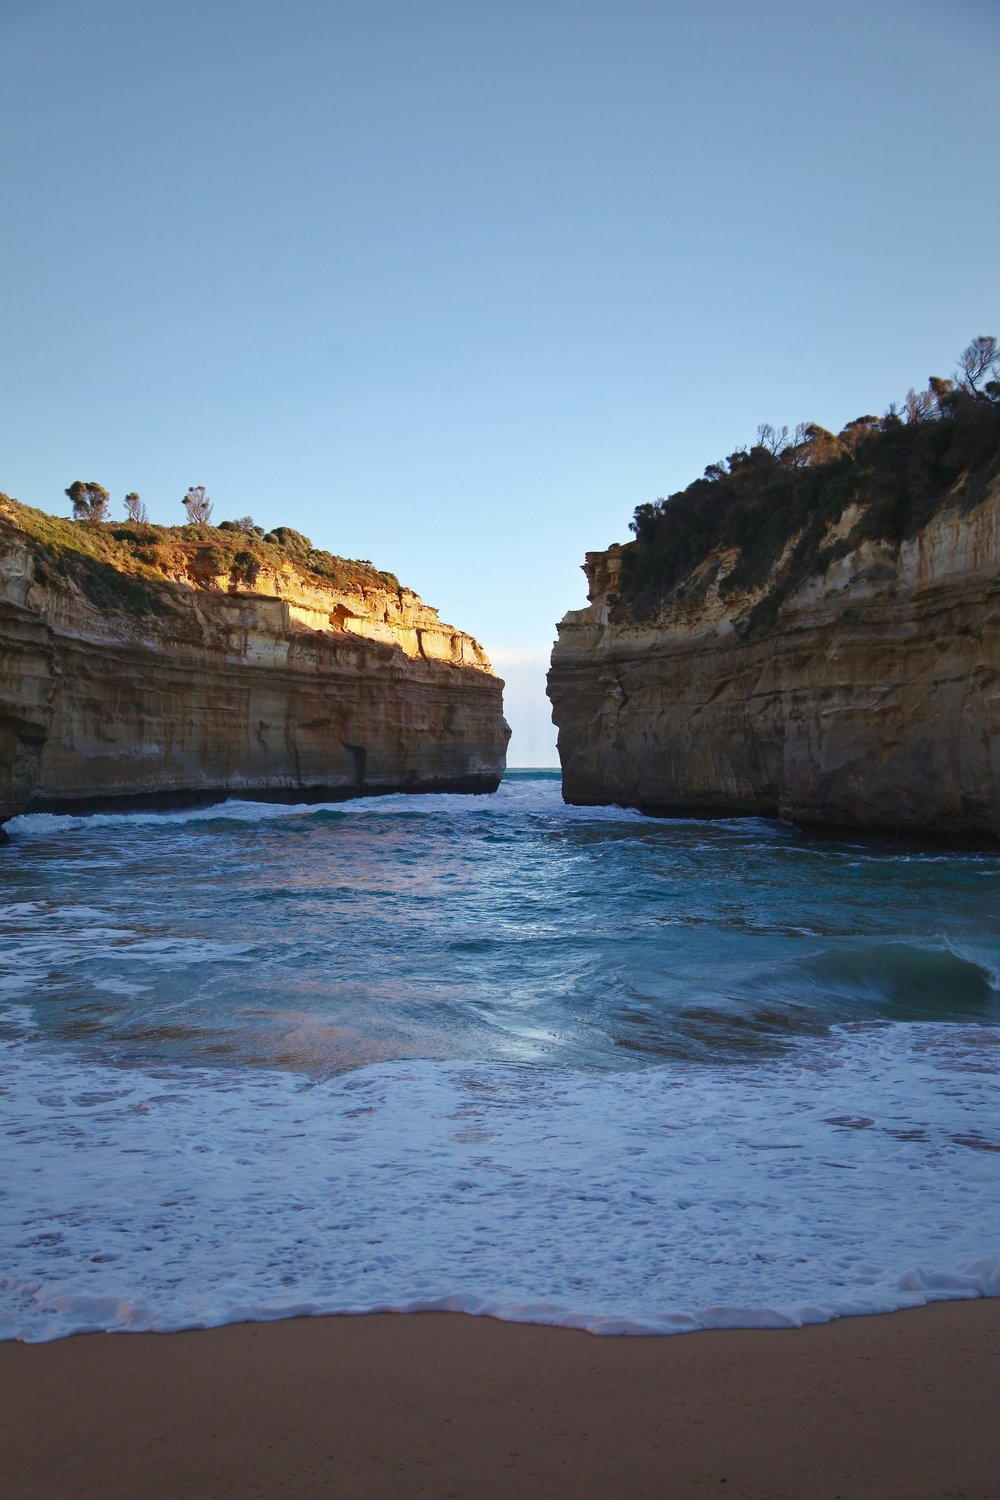 Loch Ard Gorge in Port Campbell National Park on the Great Ocean Road.